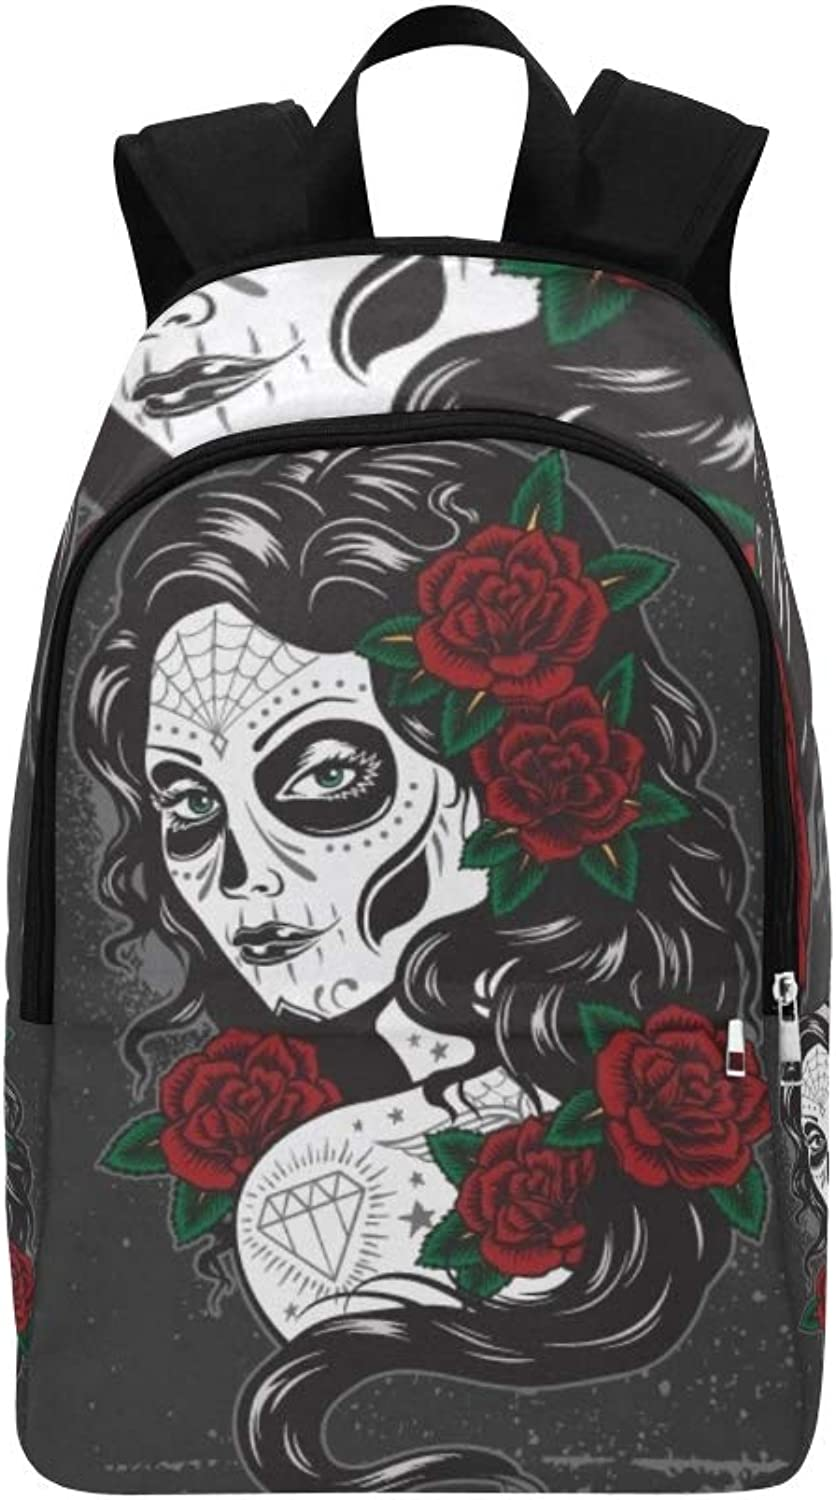 Day Dead Girl Casual Daypack Travel Bag College School Backpack for Mens and Women